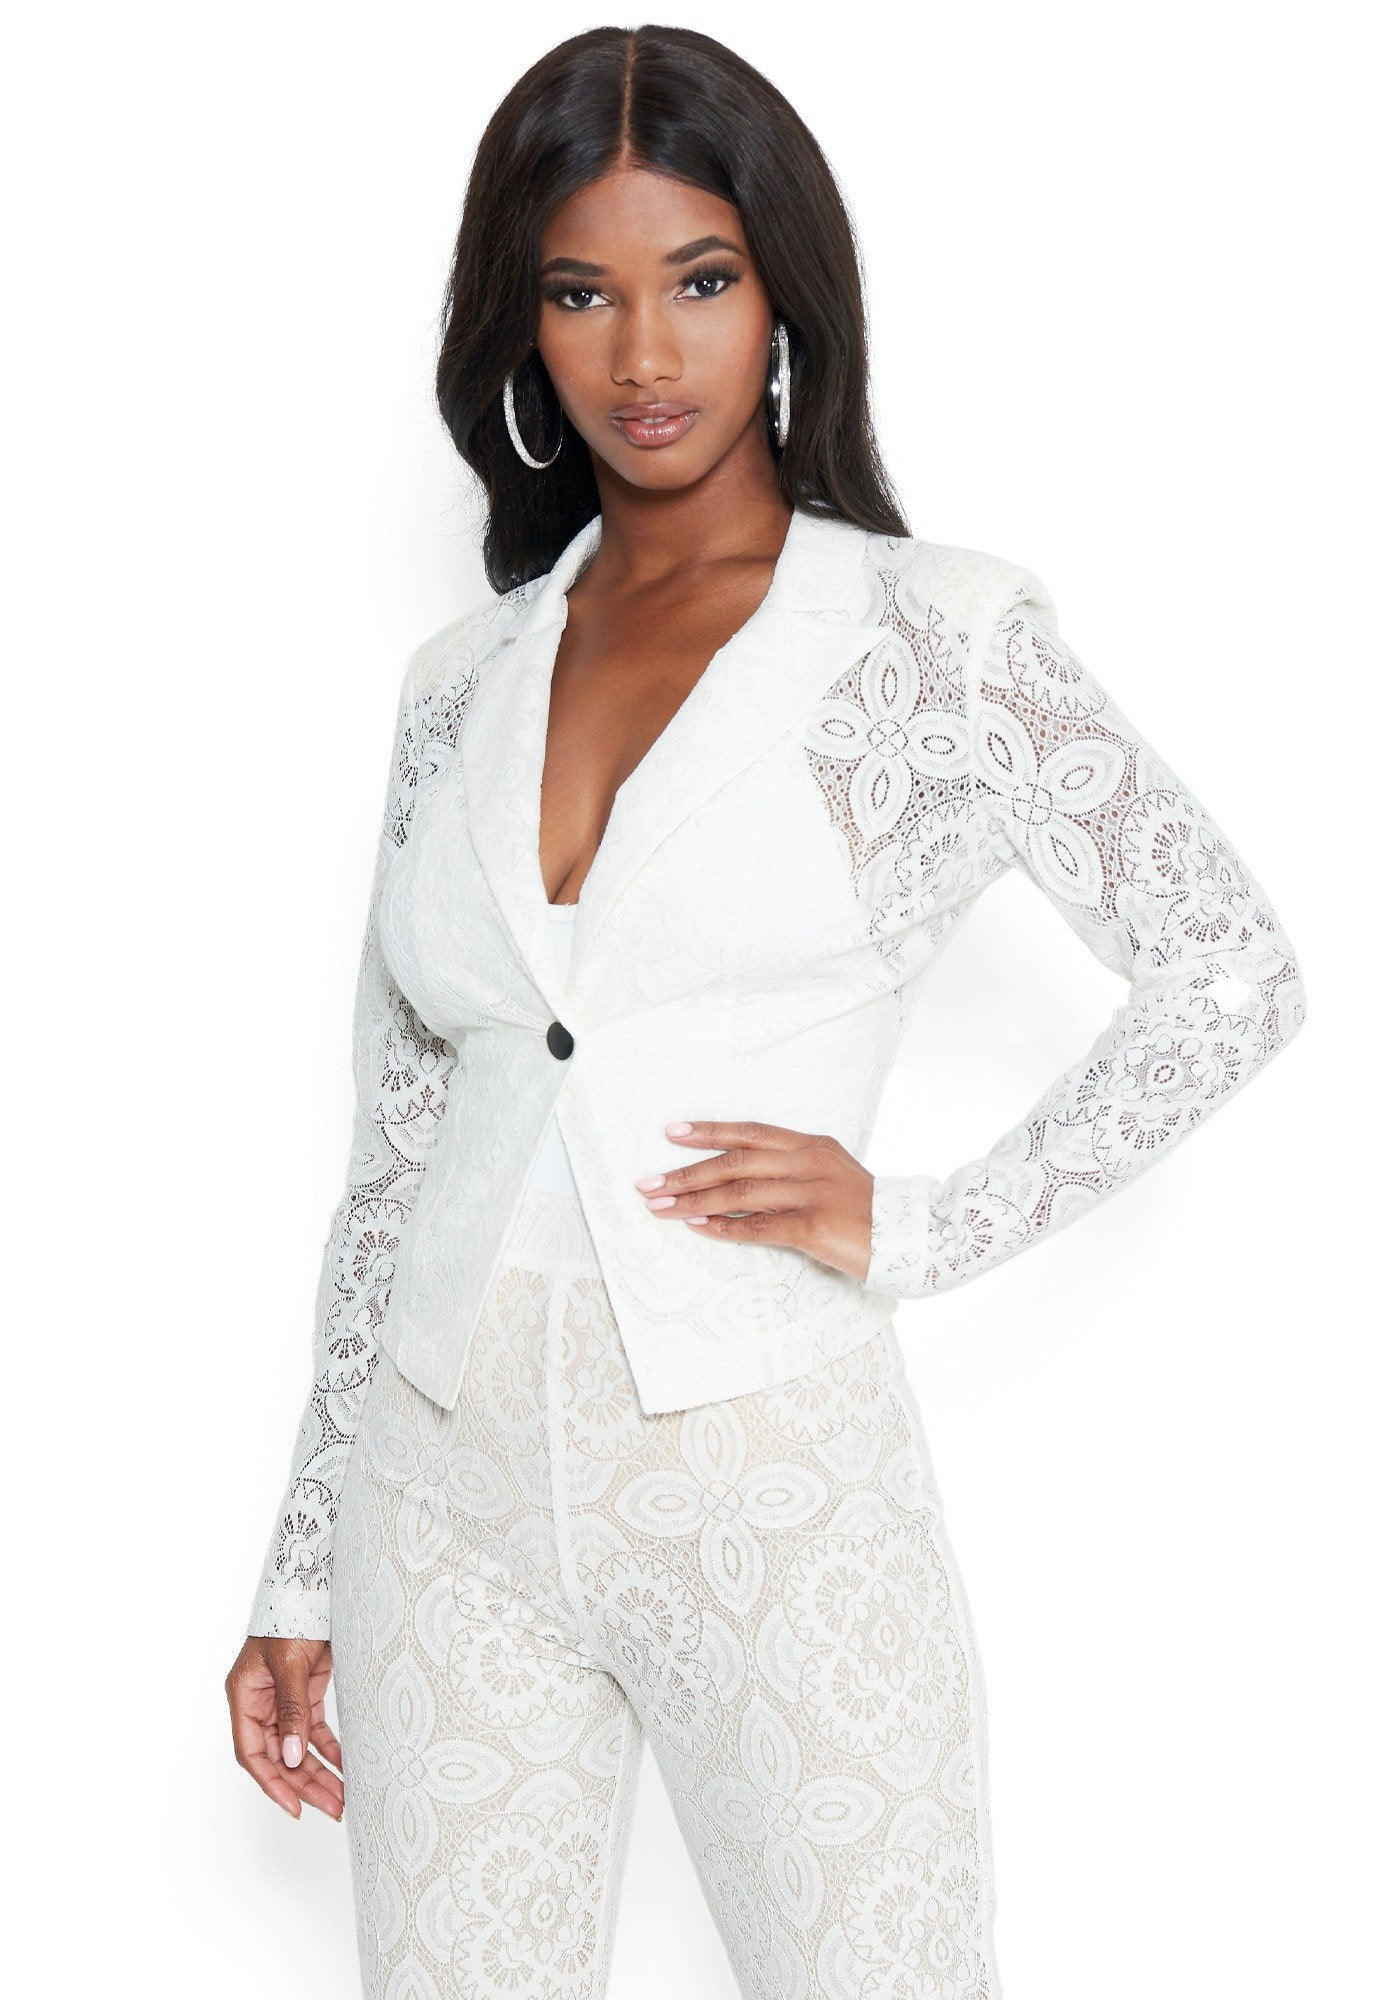 Image of Bebe Women's Lace Blazer Jacket, Size 6 in Pristine